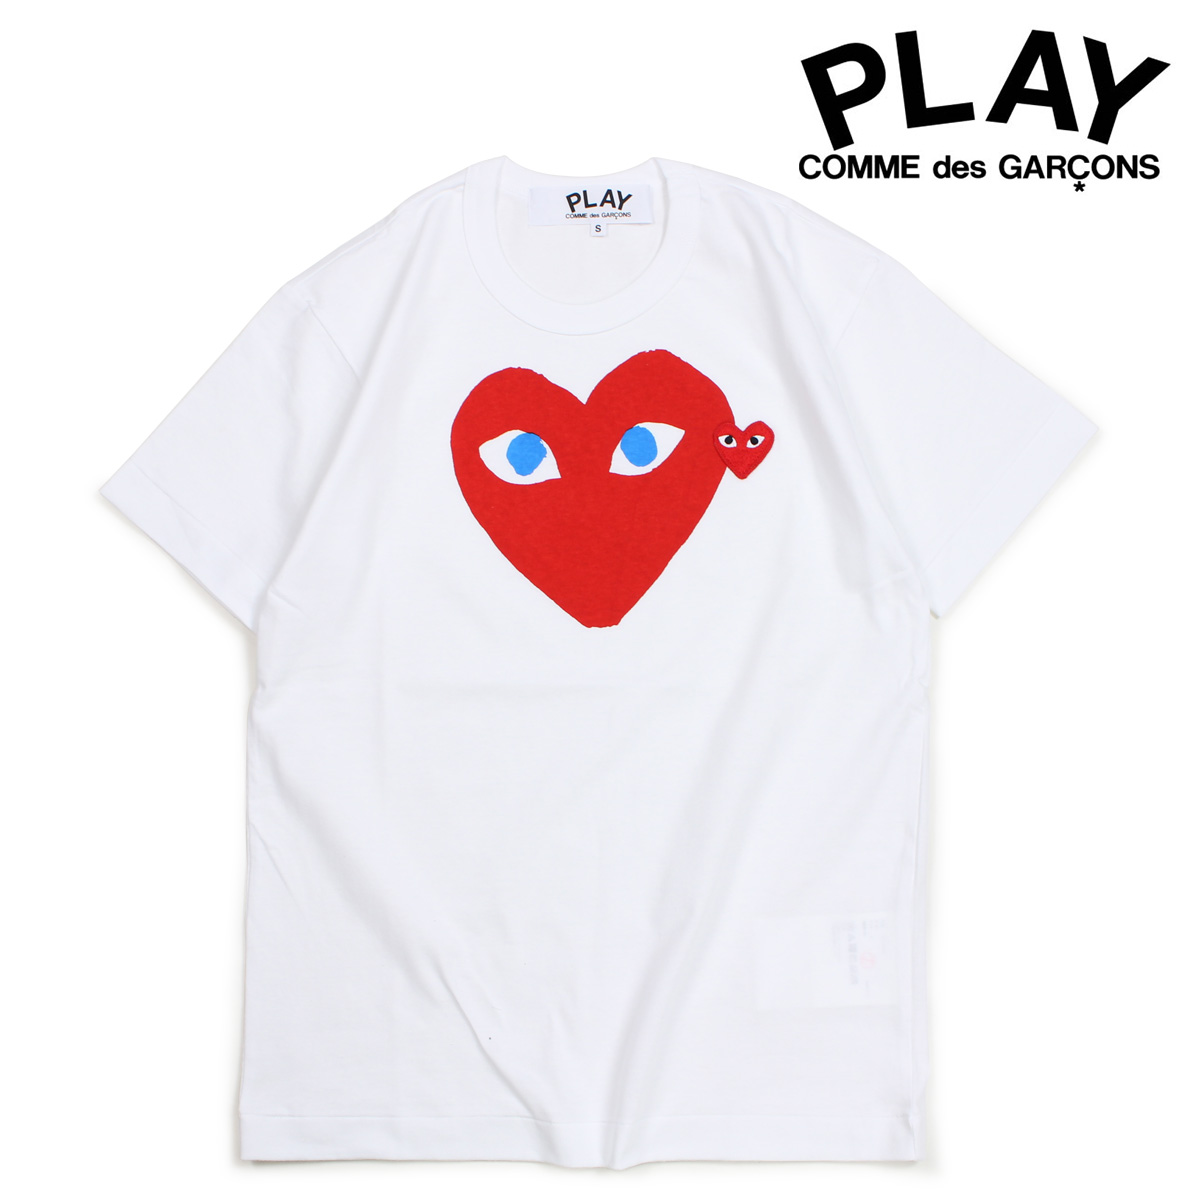 COMME des GARCONS PLAY Tシャツ 半袖 コムデギャルソン メンズ RED HEART T-SHIRT ホワイト AZT086 [10/3 新入荷]